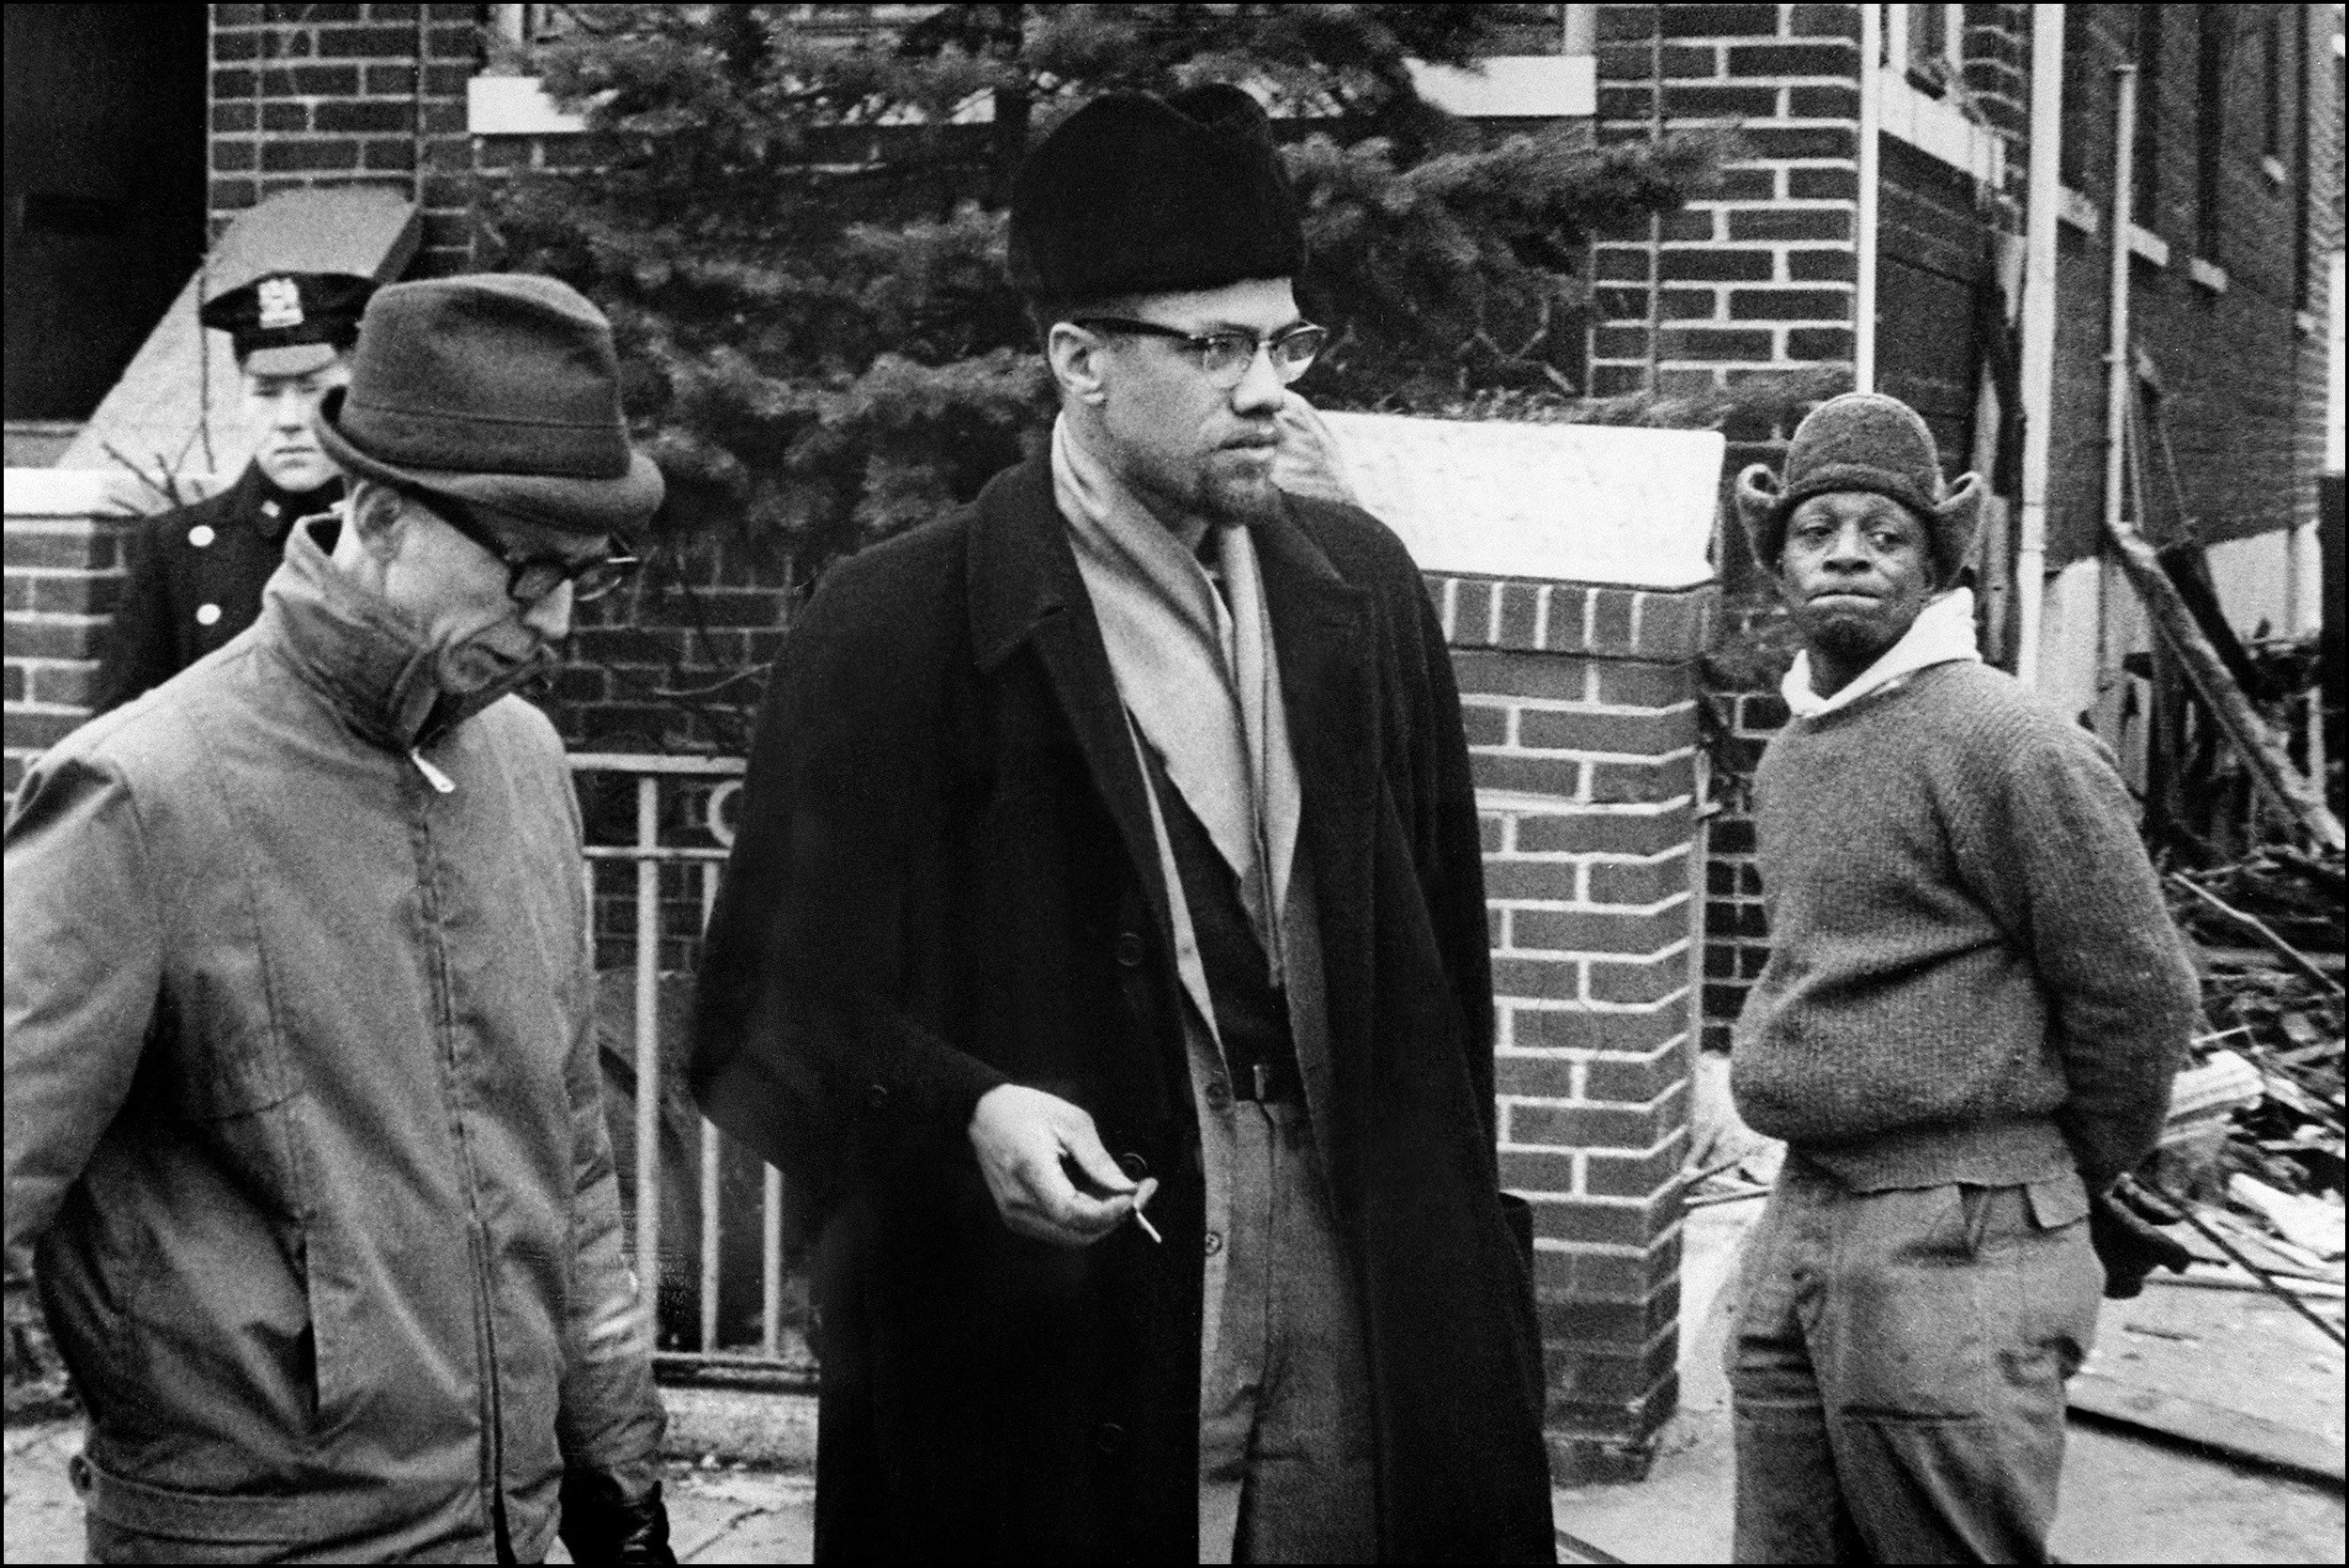 malcom x and the nation of Malcolm x argued that america was too racist in its institutions and people to offer hope to blacks the solution proposed by the nation of islam was a separate.